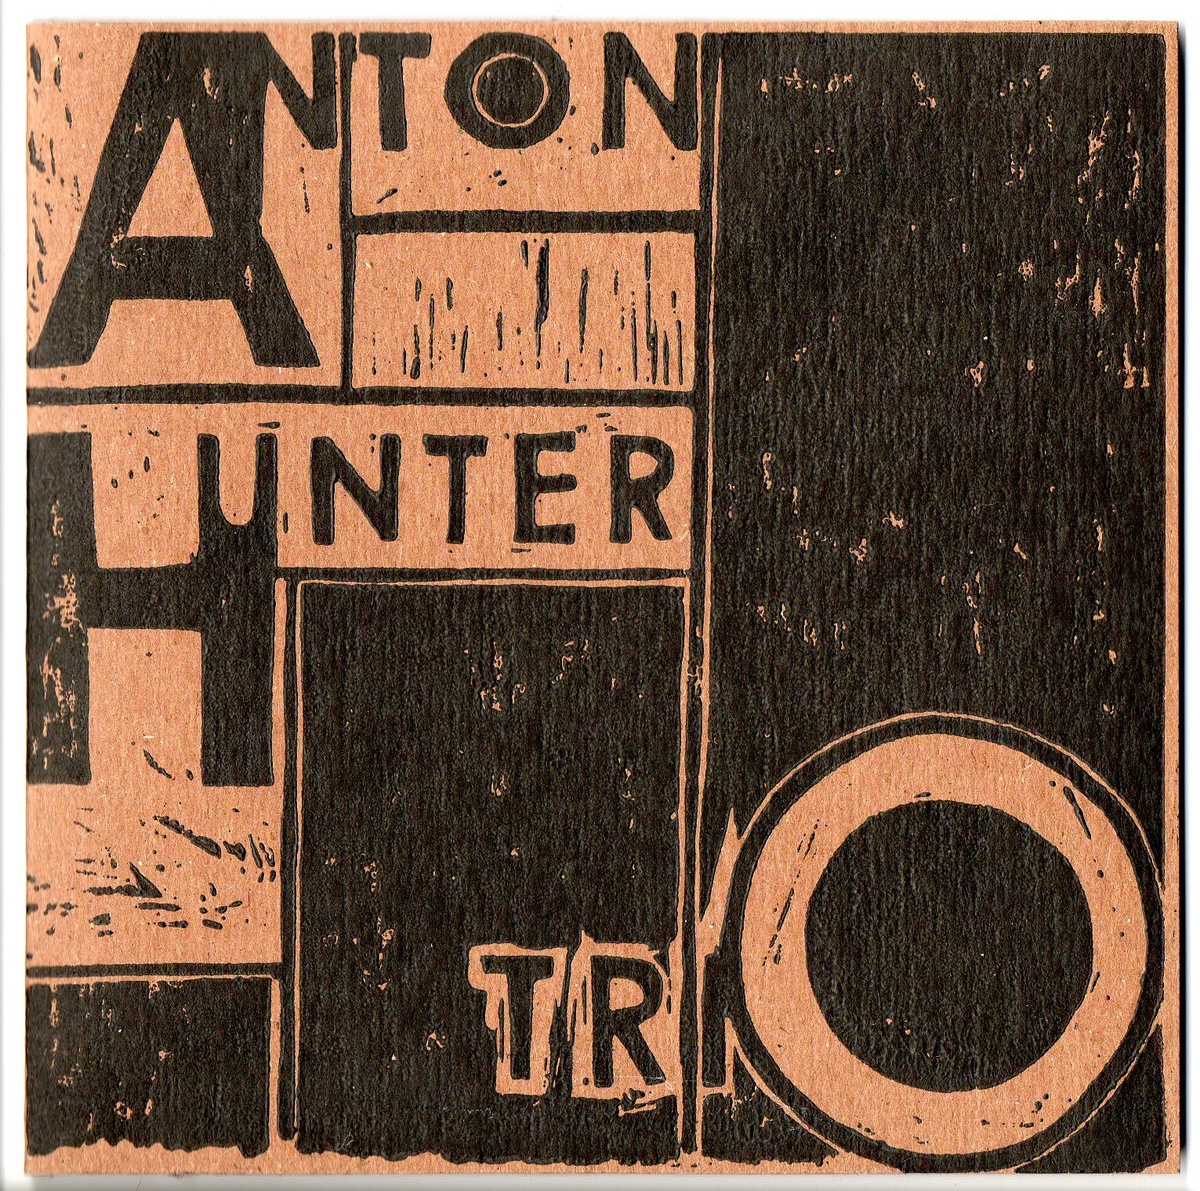 Anton Hunter Trio